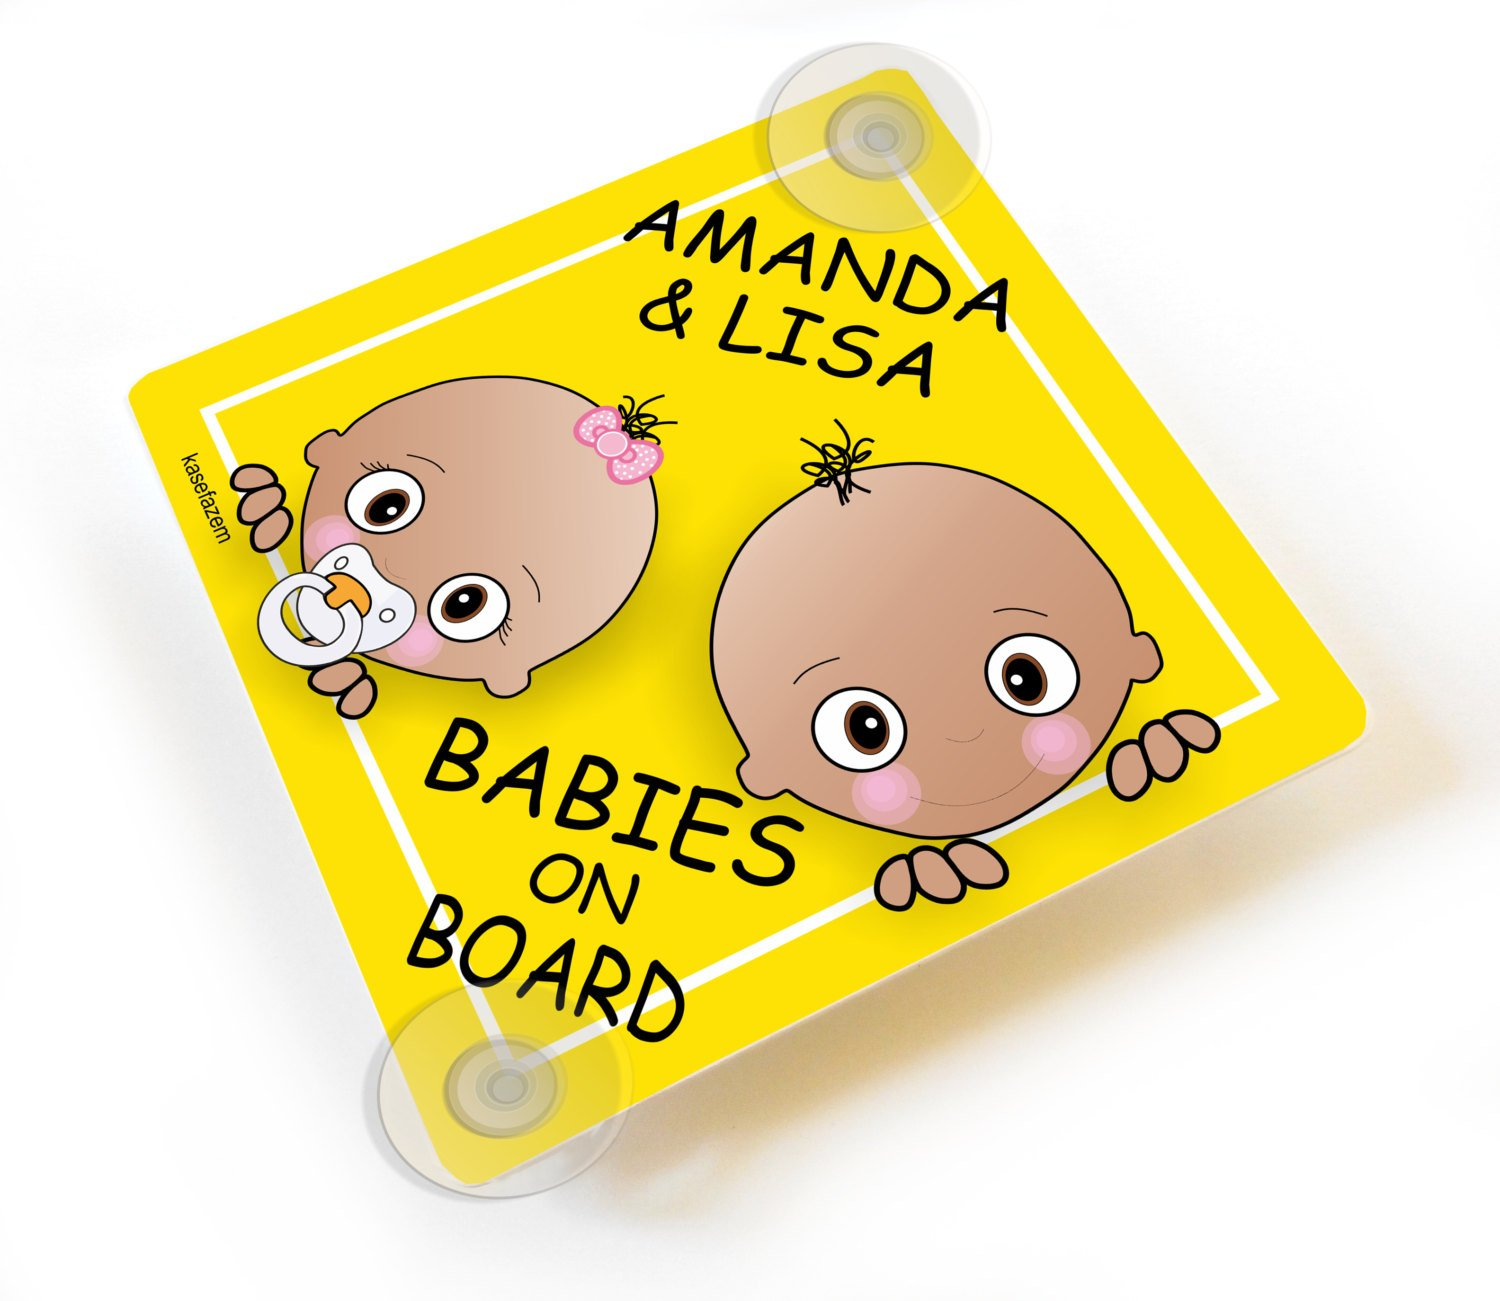 Big brother and Little Sister Personalizable Babies on Board Yellow Car Sign